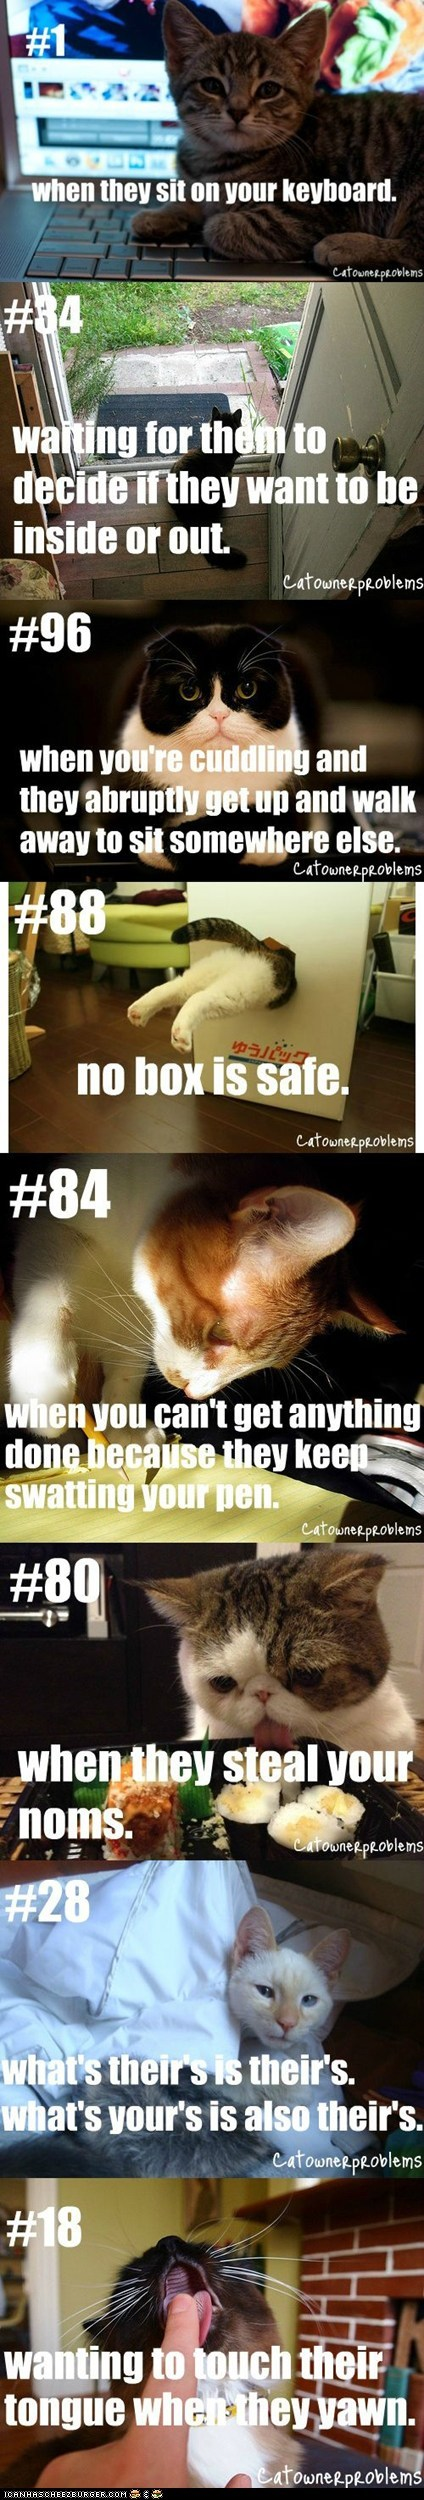 cat owner problems cat owners Cats complaints Hall of Fame multipanel owners problems - 6014377472